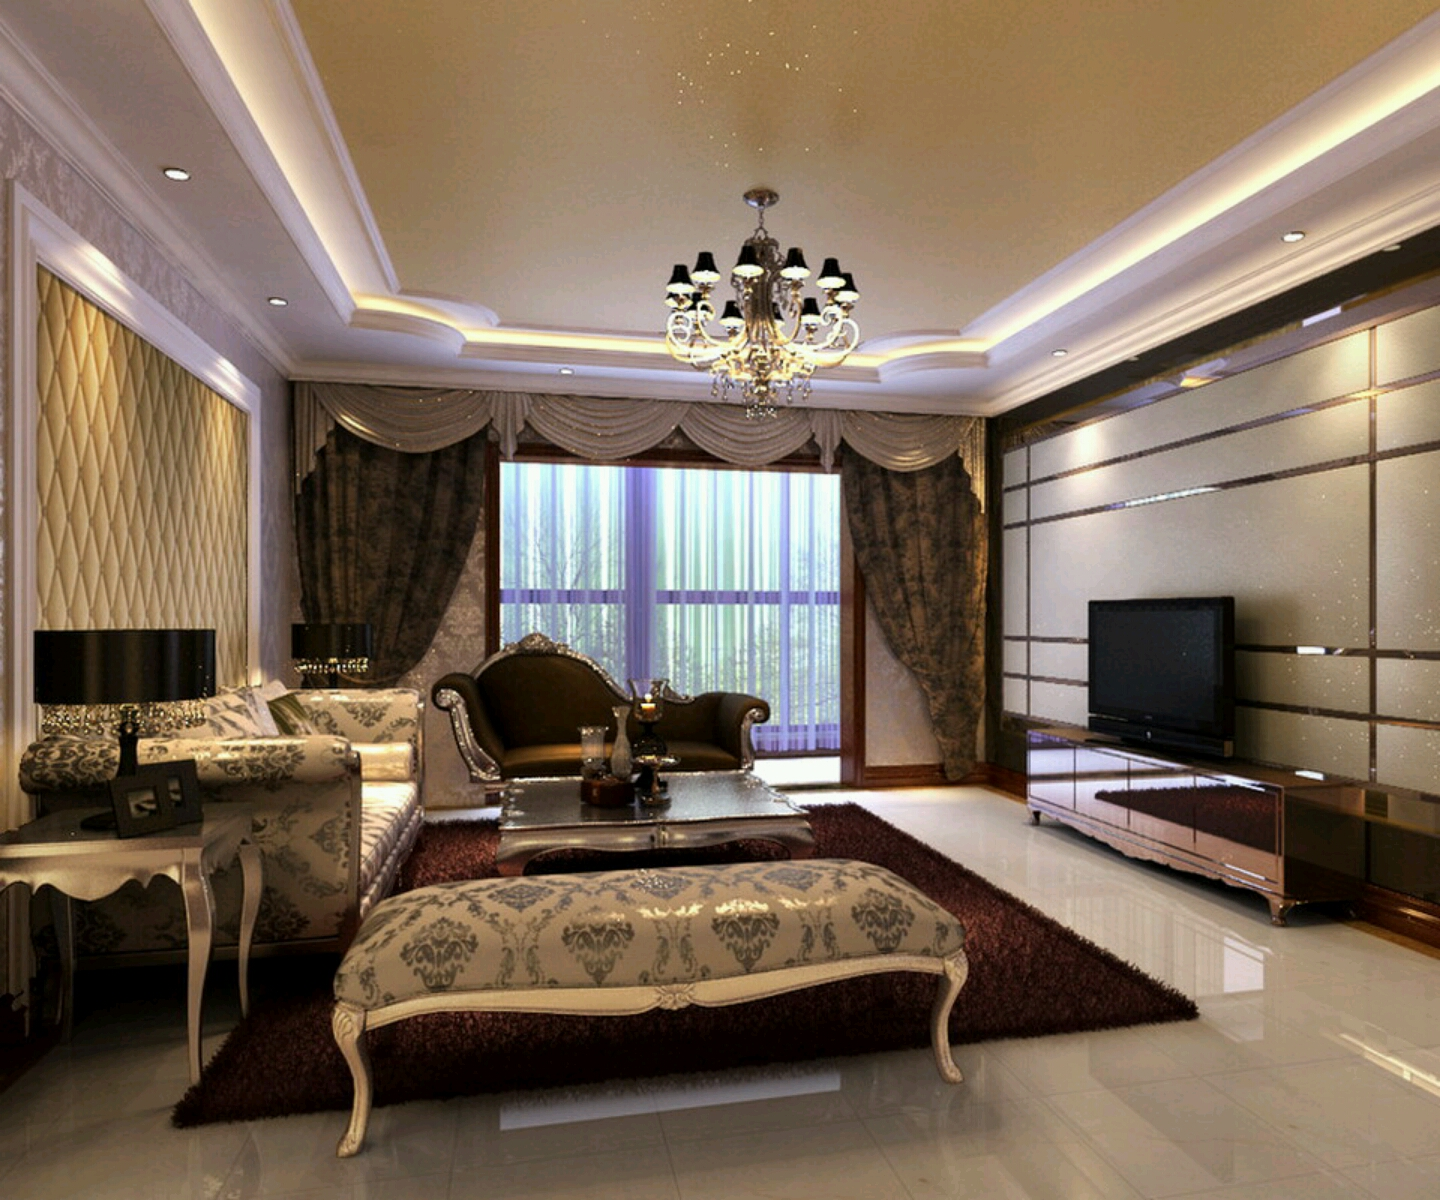 New home designs latest luxury homes interior decoration for Home lounge design ideas